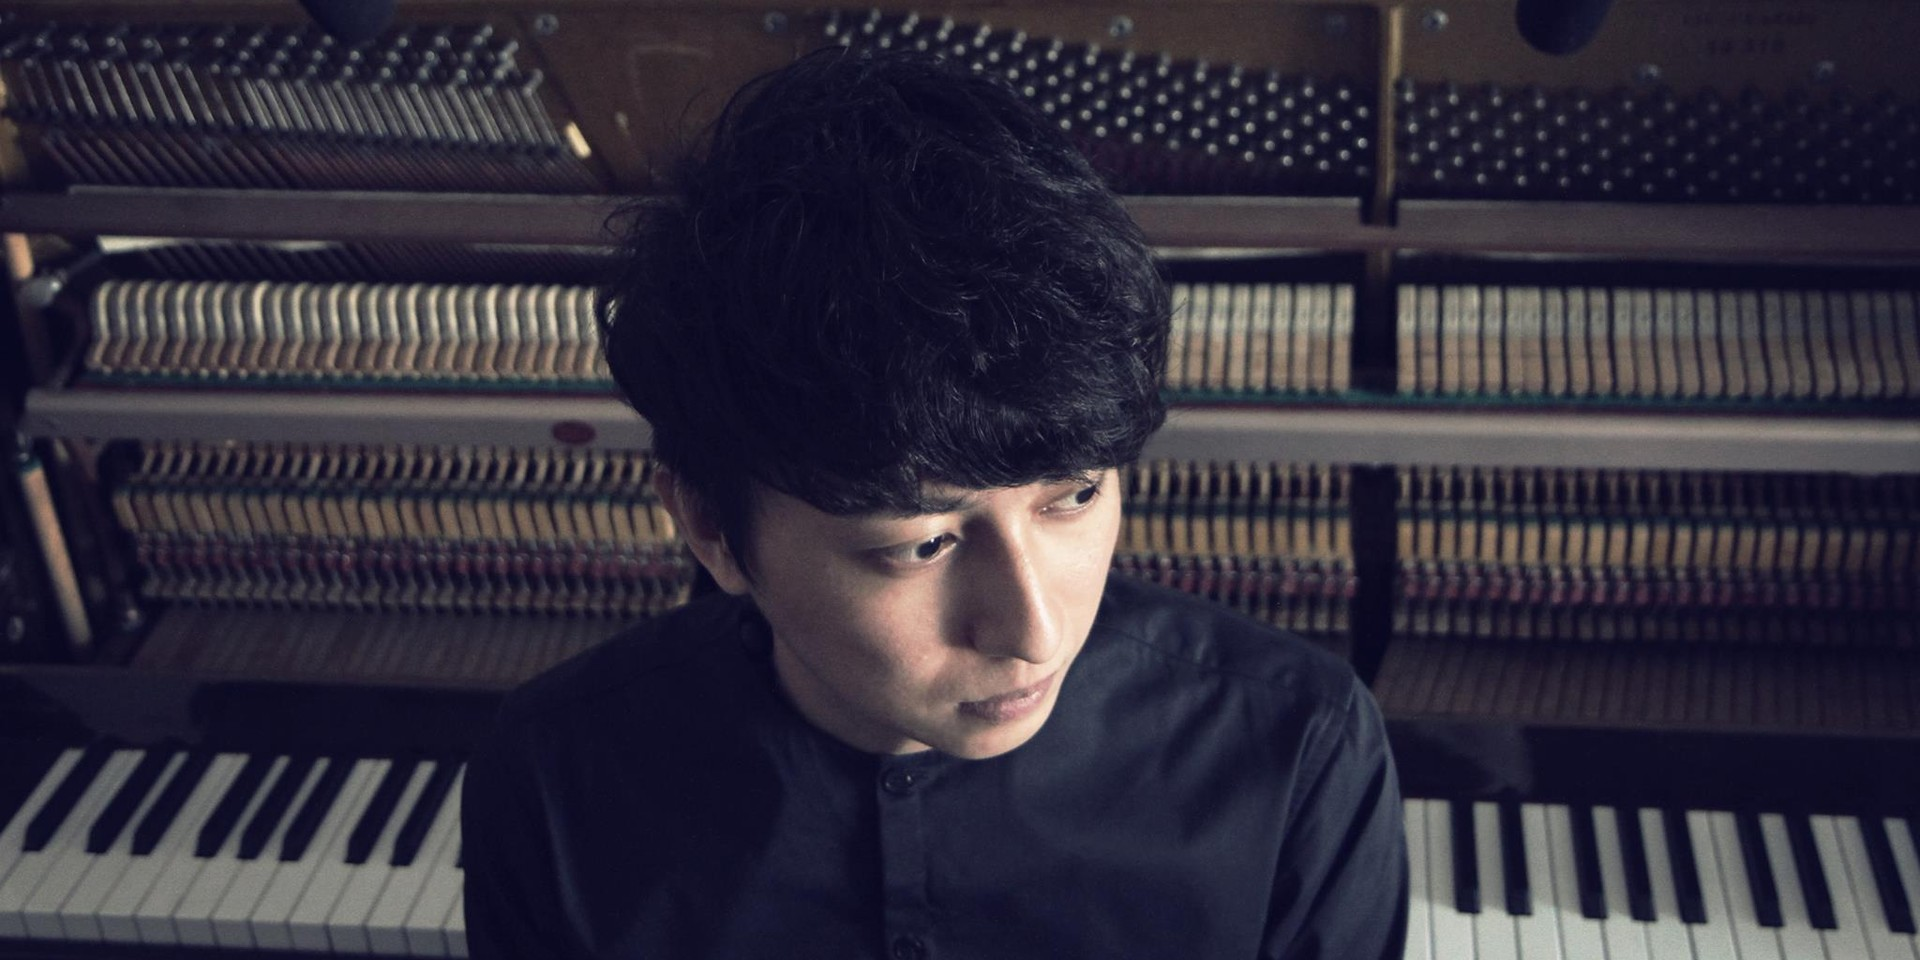 Ambient artist sonicbrat releases track for Piano Day